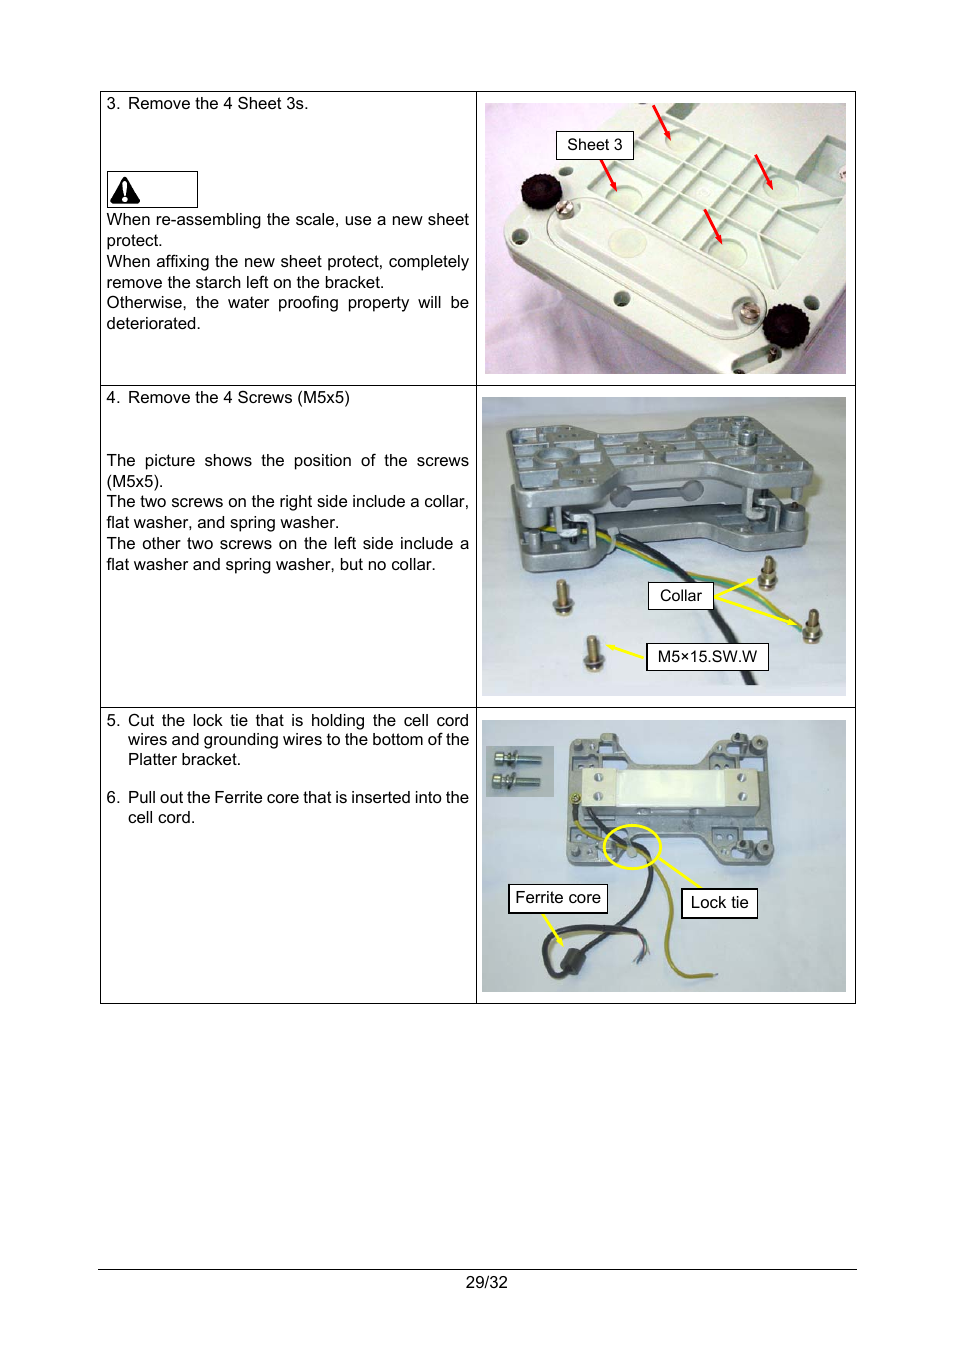 Ishida Scales Manual Arb Air Compressor Wiring Diagram Http Forumih8mudcom 60series Array Rice Lake Ipc Wp Portable Bench User Page 32 Rh Manualsdir